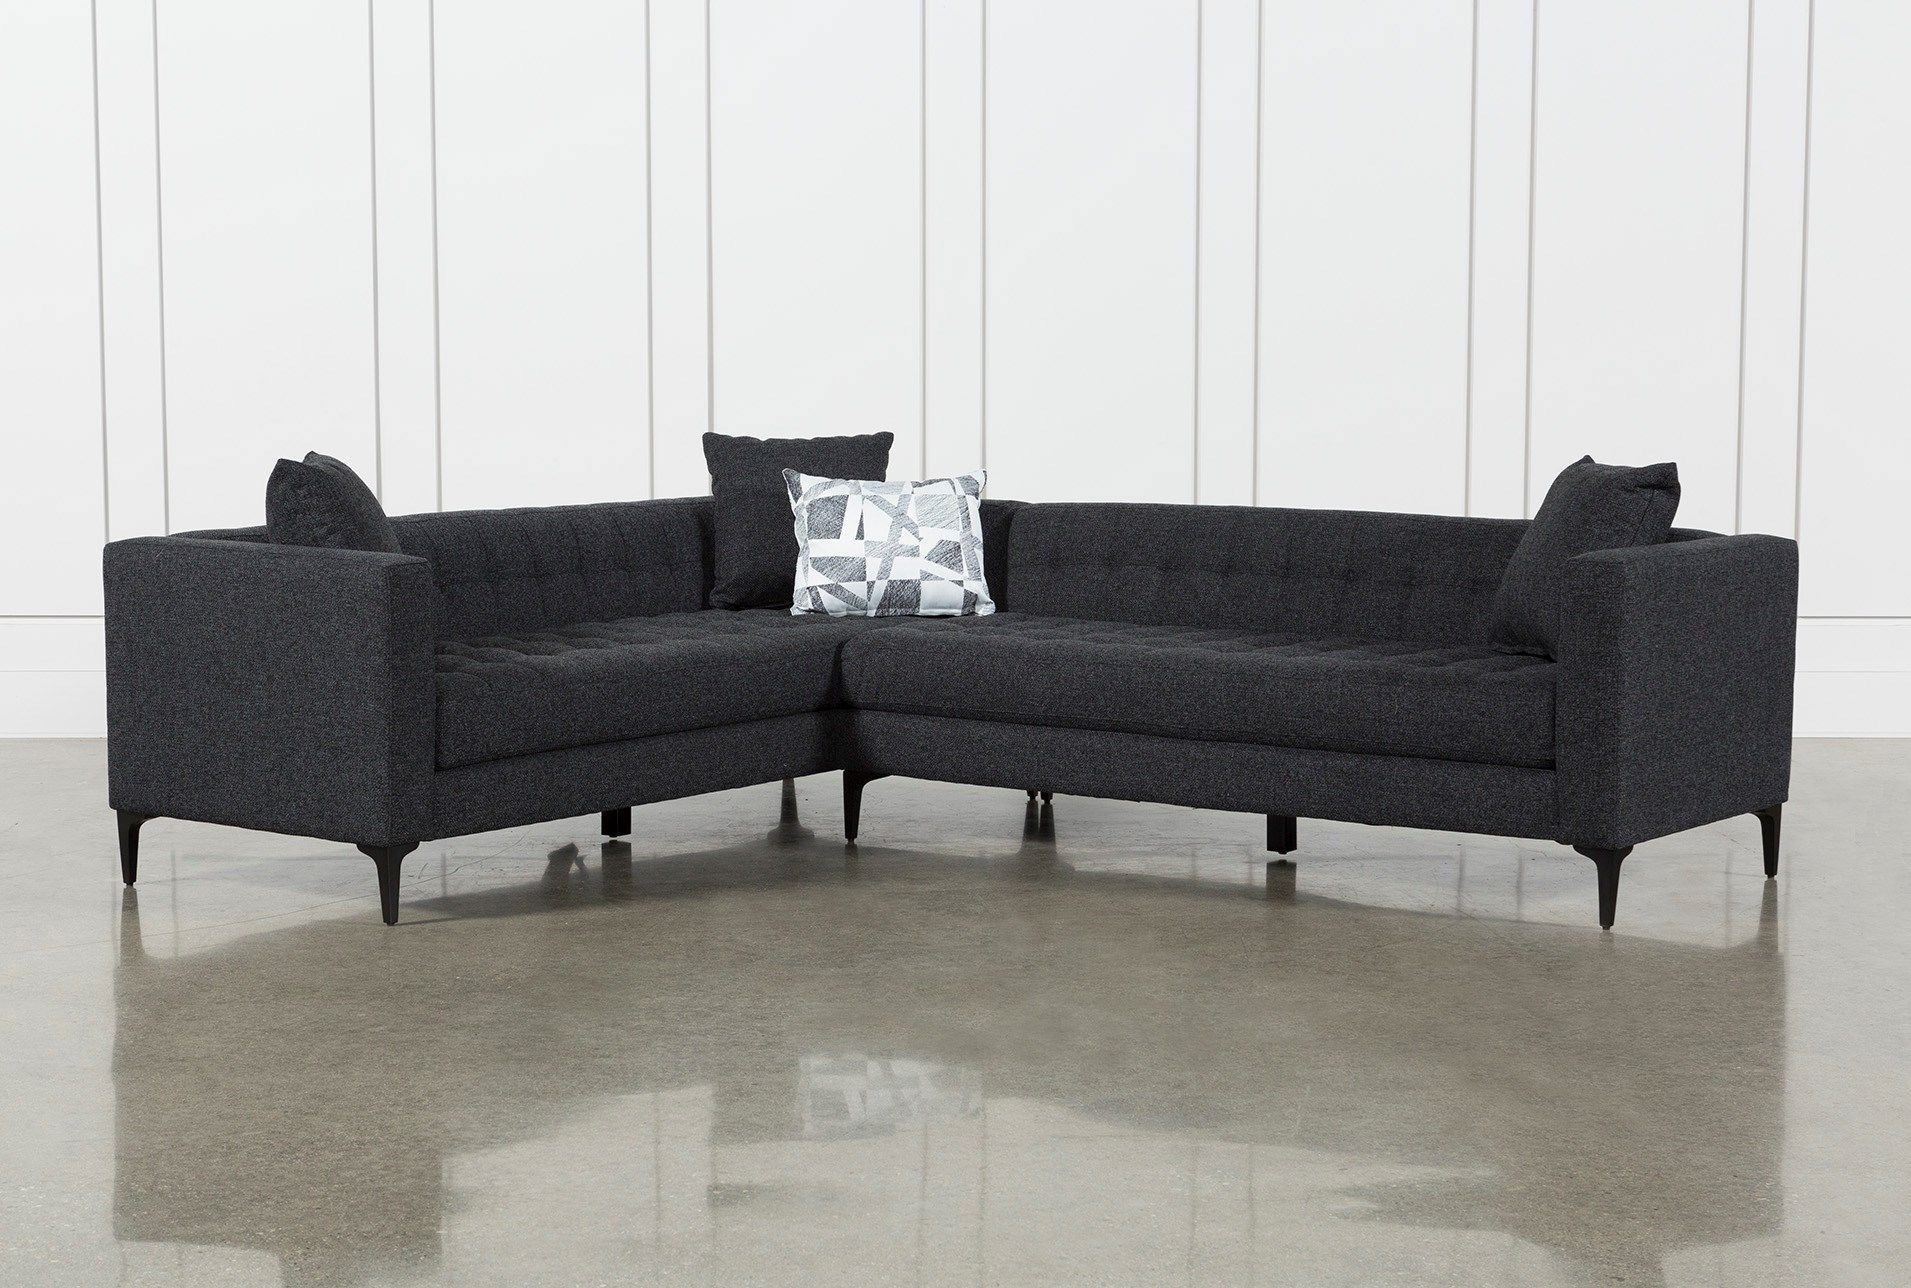 Anson 2 Piece Sectional In 2018 | Decorating | Pinterest | House With Regard To Matteo Arm Sofa Chairs By Nate Berkus And Jeremiah Brent (View 23 of 25)